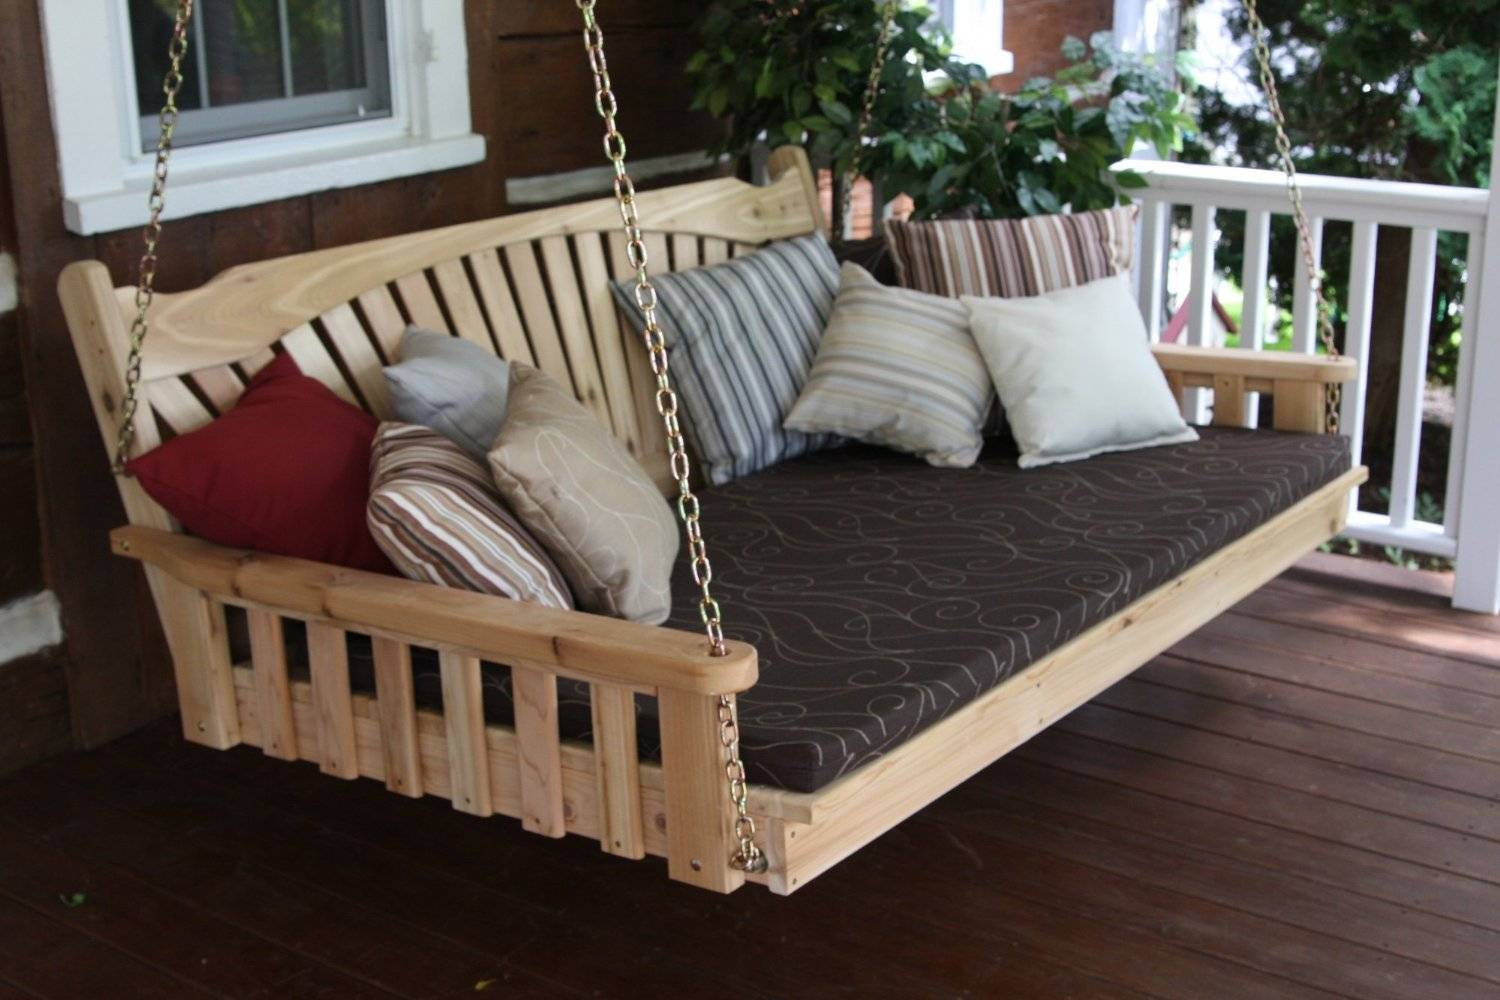 8 Super Comfy Porch Swing Bed Designs - PerfectPorchSwing.com